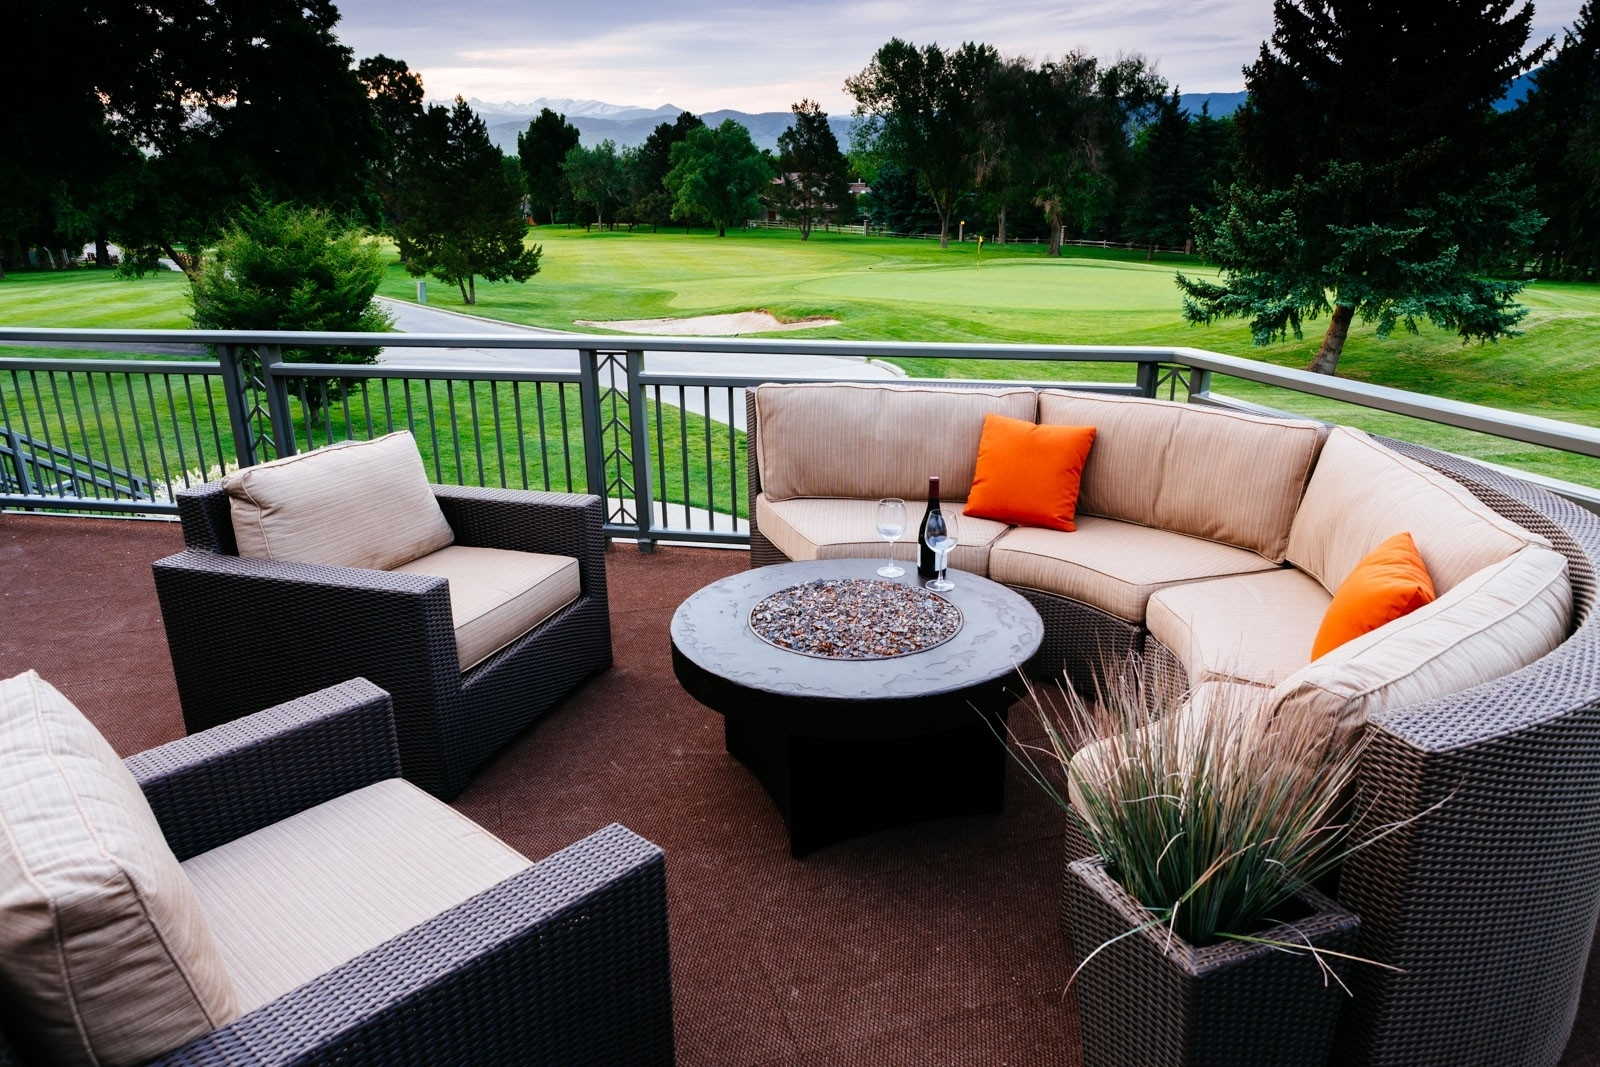 Recent Patio Conversation Sets With Gas Fire Pit Regarding Decoration : Outdoor Sectional With Fire Pit Propane Fire Pit Set (View 7 of 20)